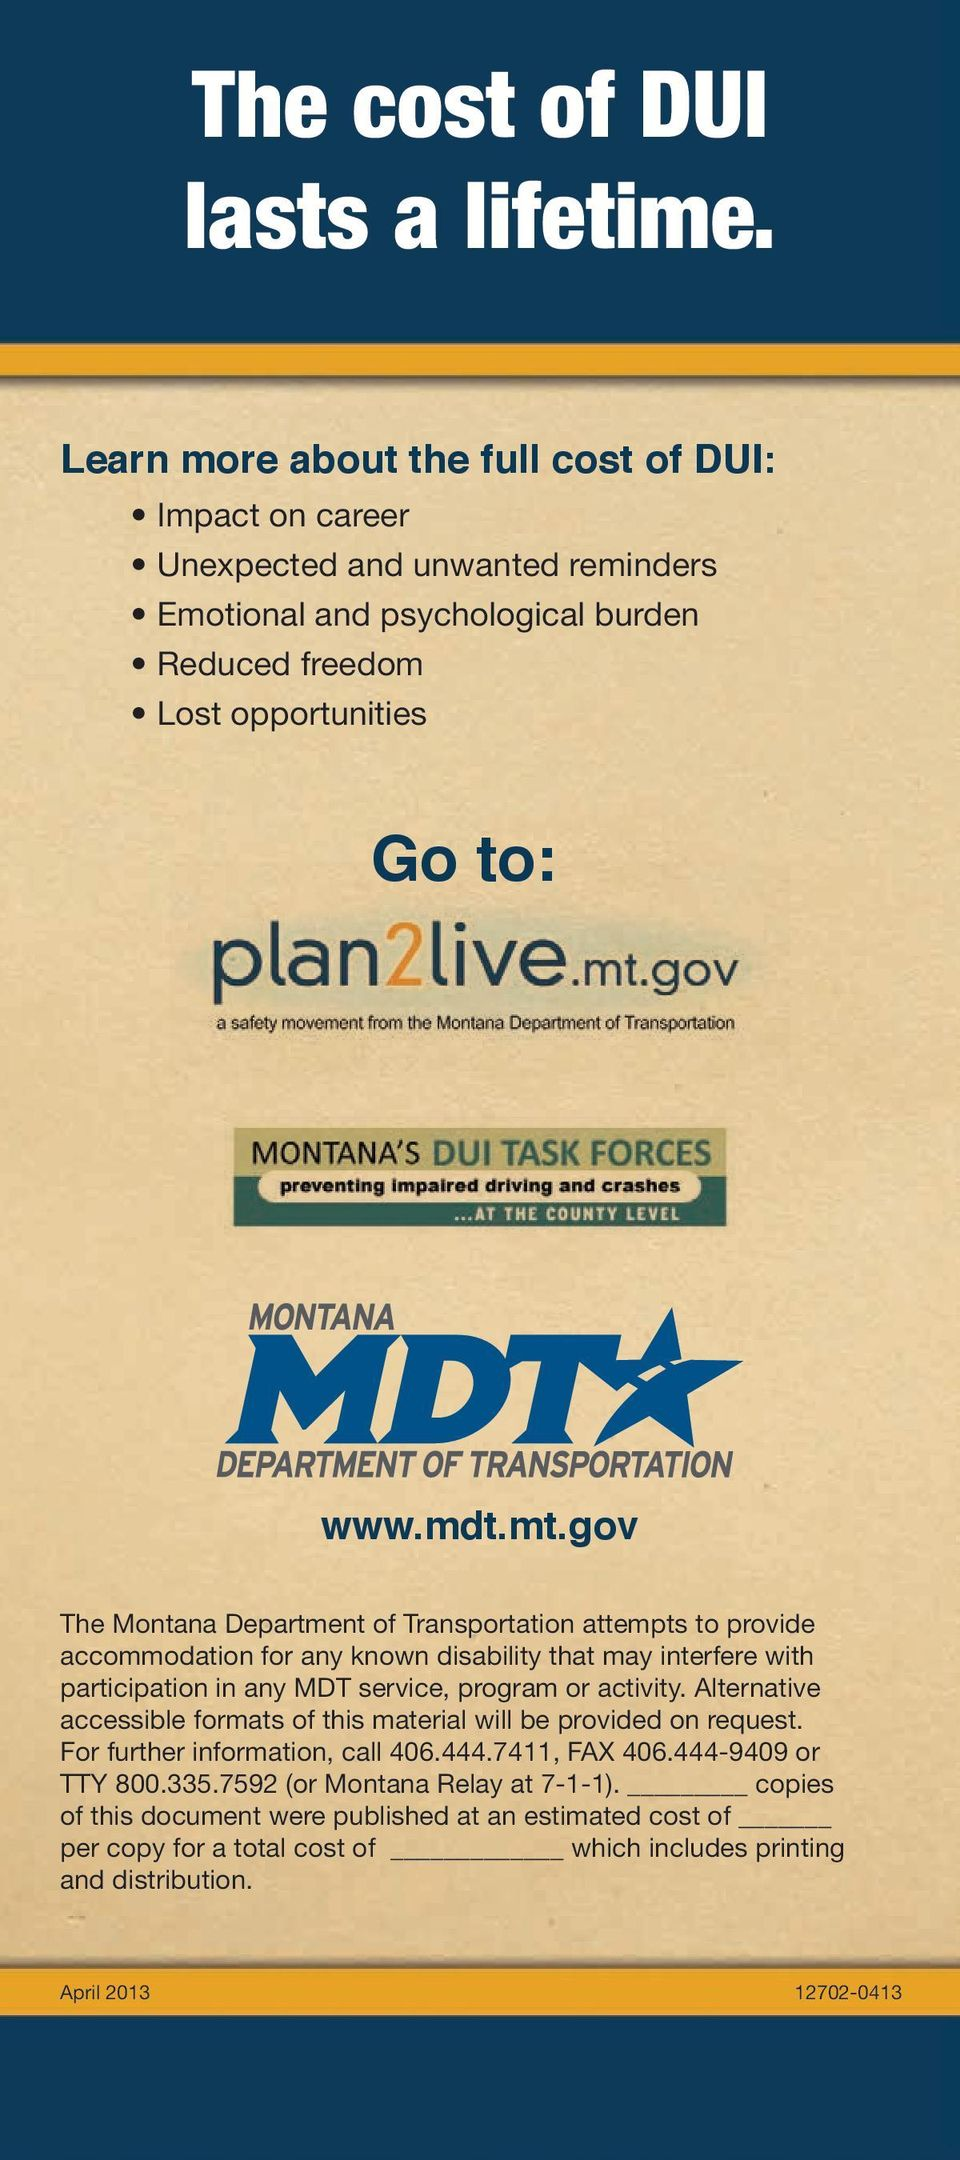 gov The Montana Department of Transportation attempts to provide accommodation for any known disability that may interfere with participation in any MDT service, program or activity.